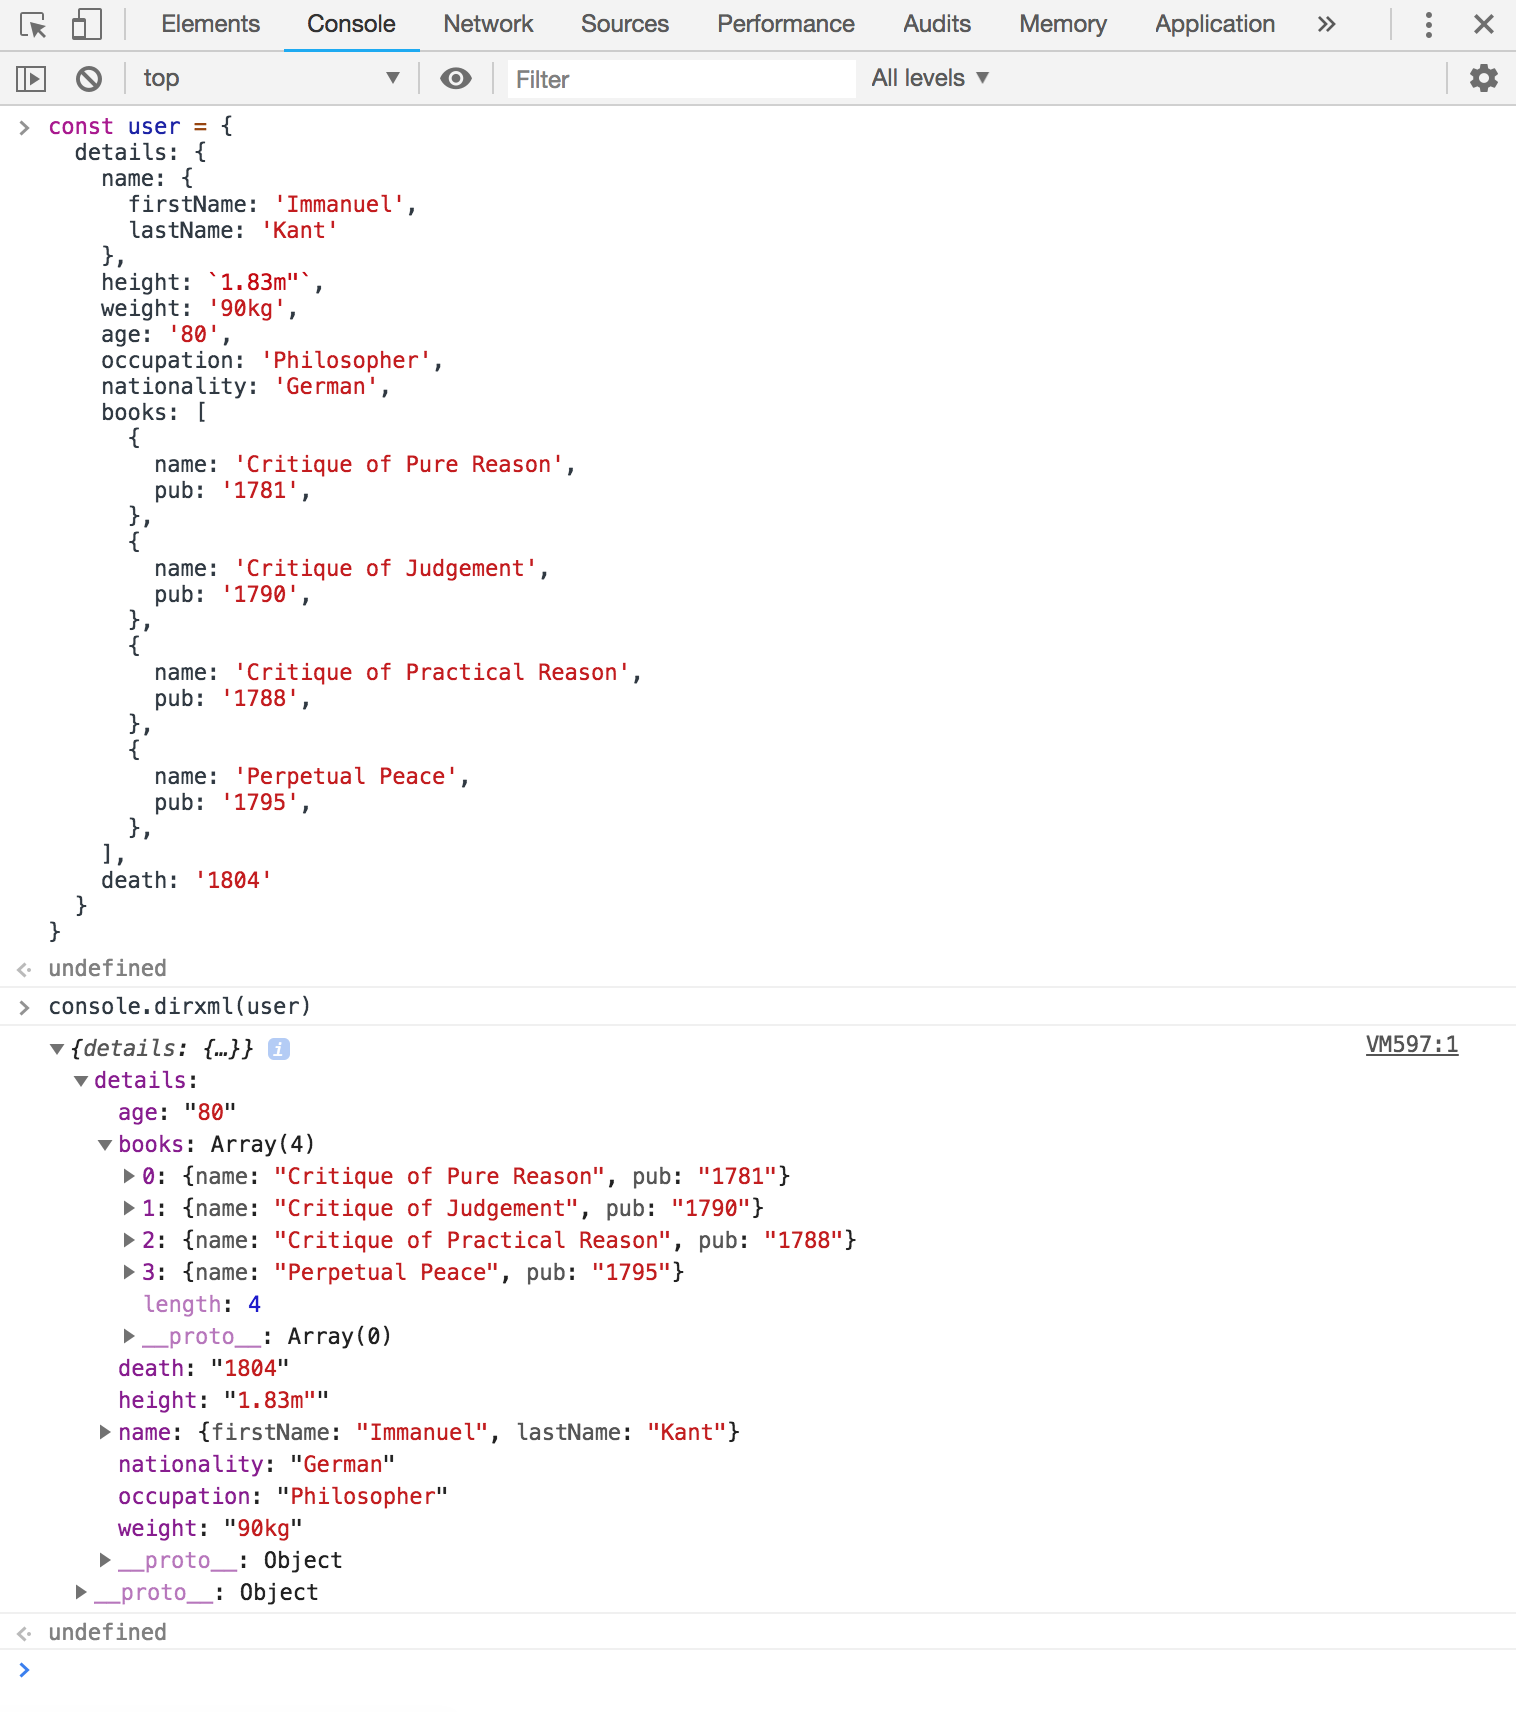 Screenshot of the user object displayed in a hierarchical dirxml format.